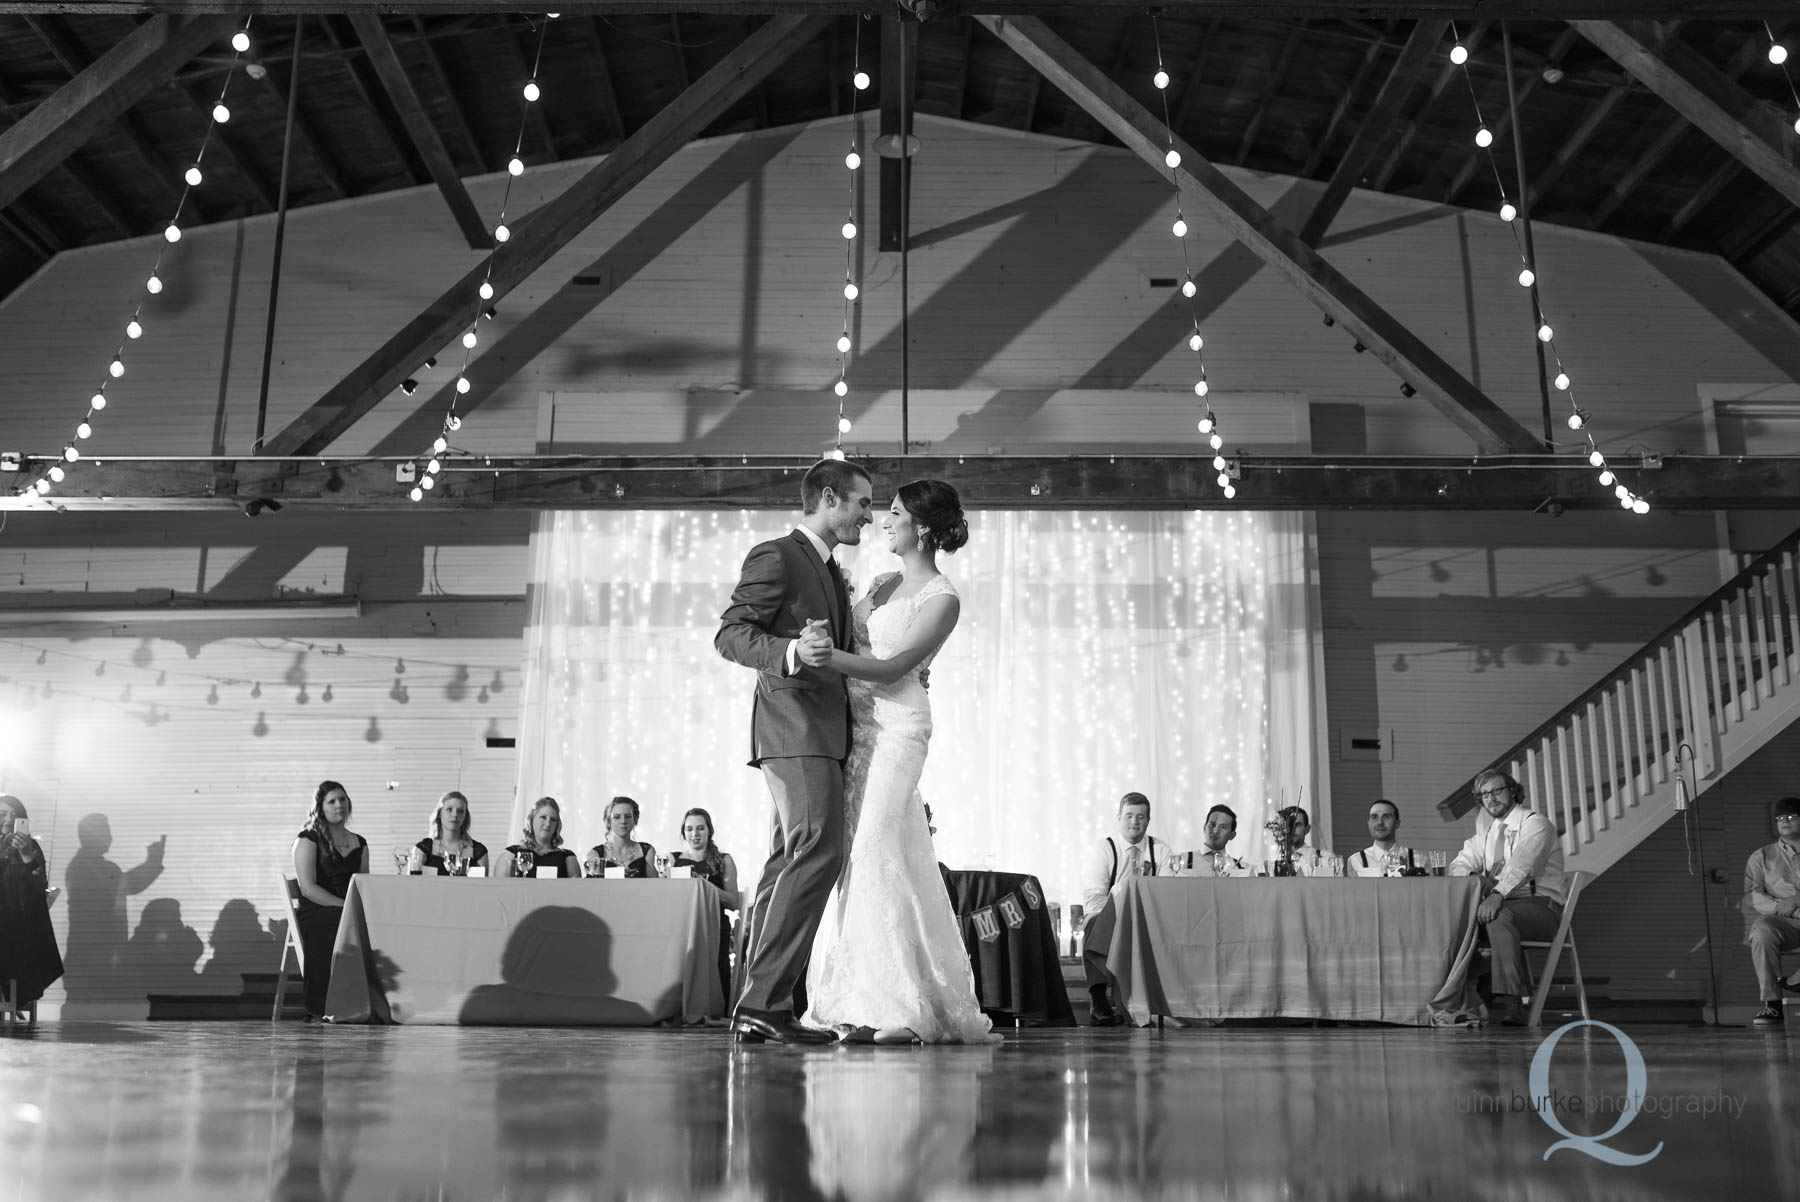 bride and groom first dance in barn at Green Villa Barn wedding